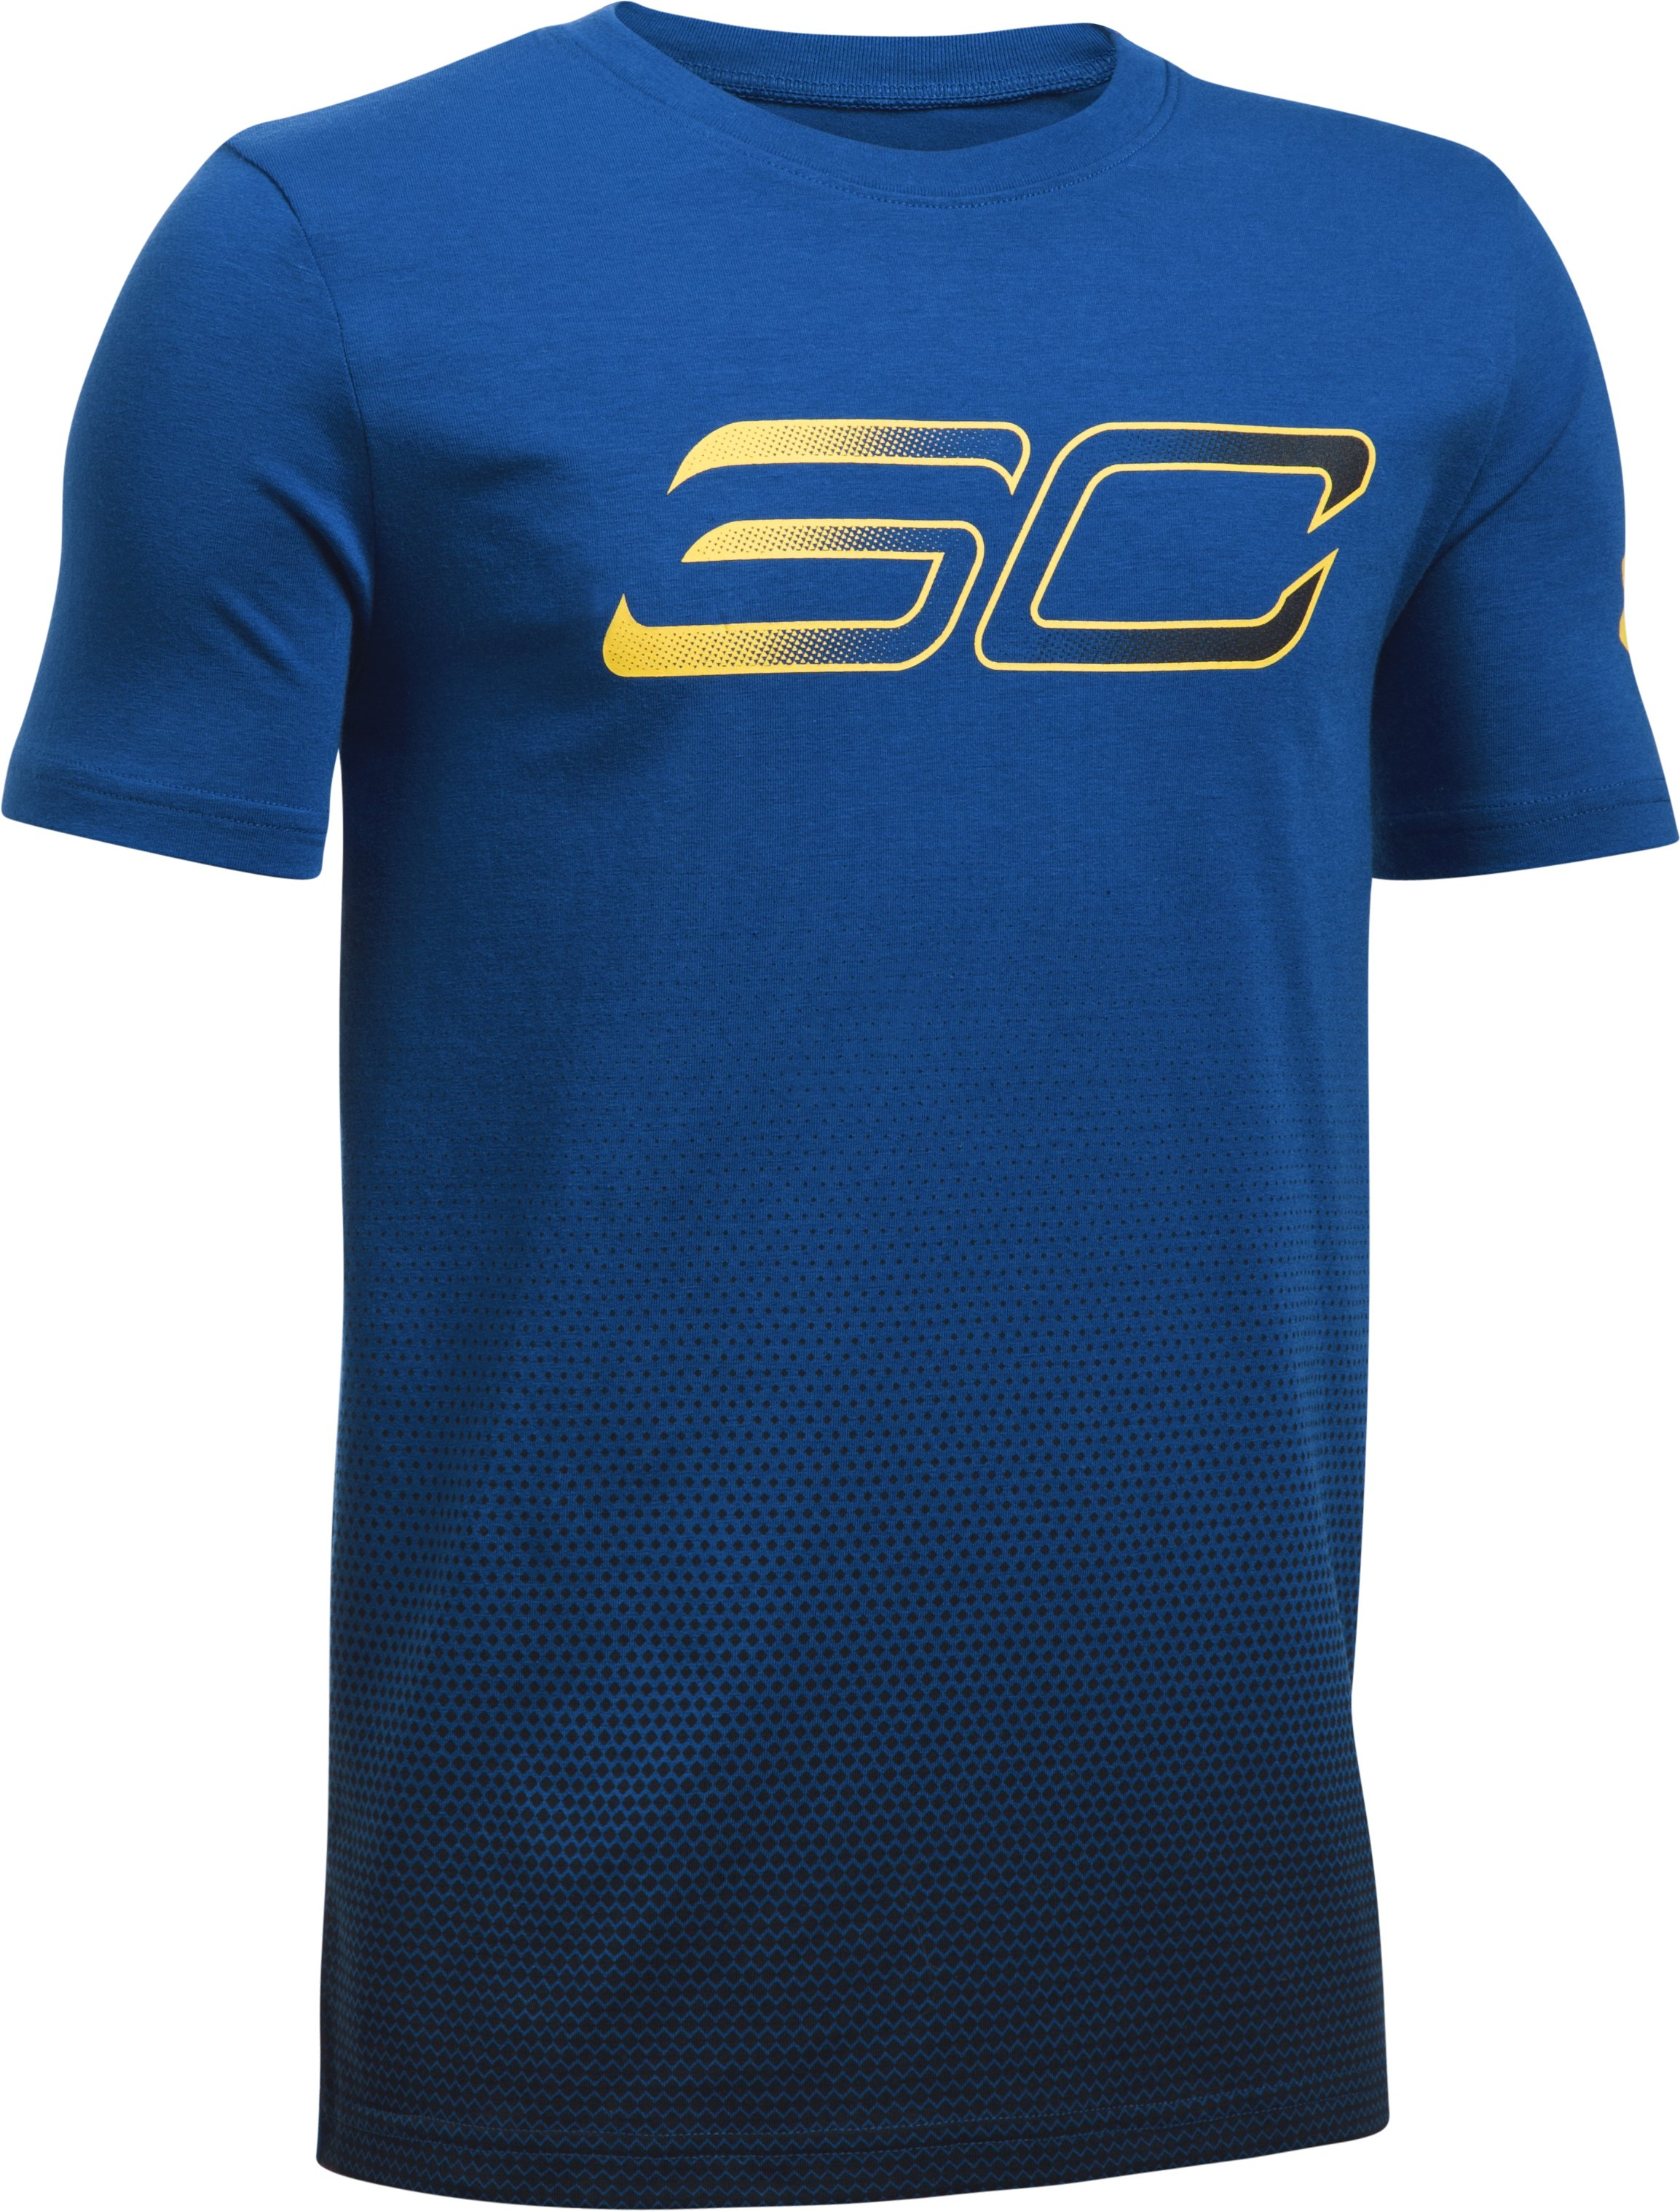 Boys' SC30 Player Fade Short Sleeve T-Shirt, Royal,